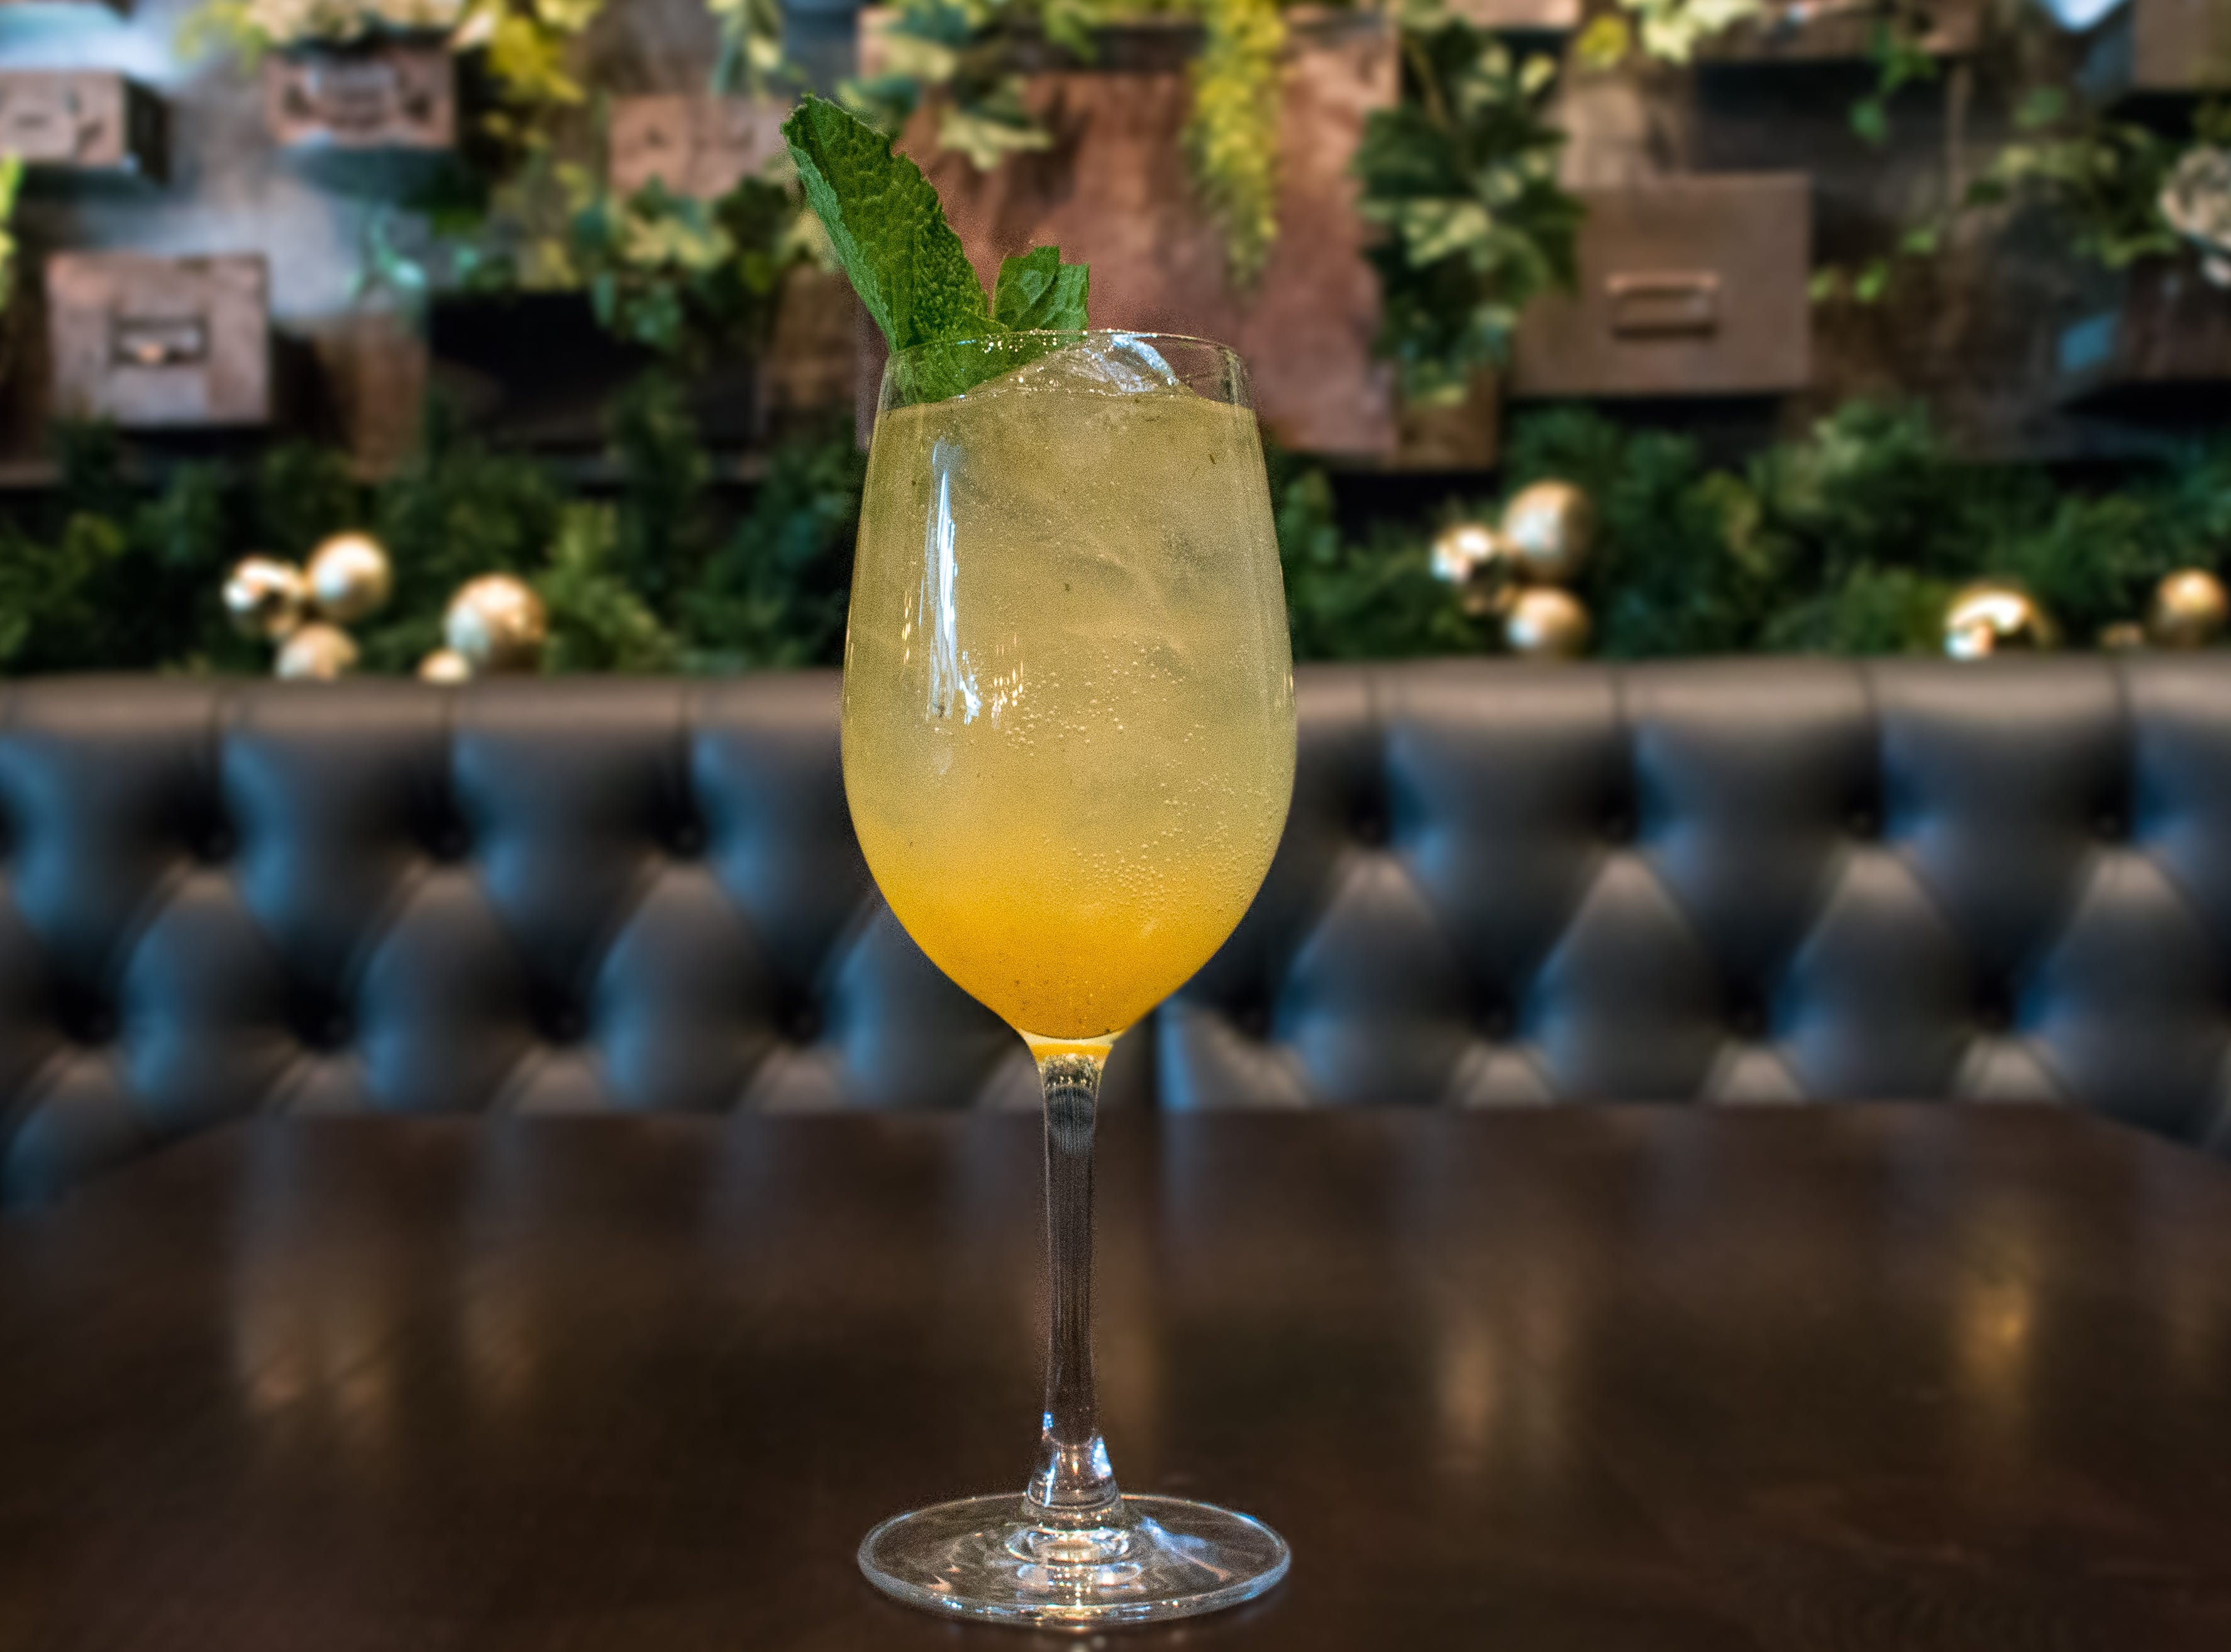 The No. -12 at Siena Tavern in Chicago. Its ingredients are peach, lime juice, simple syrup and mint leaves.